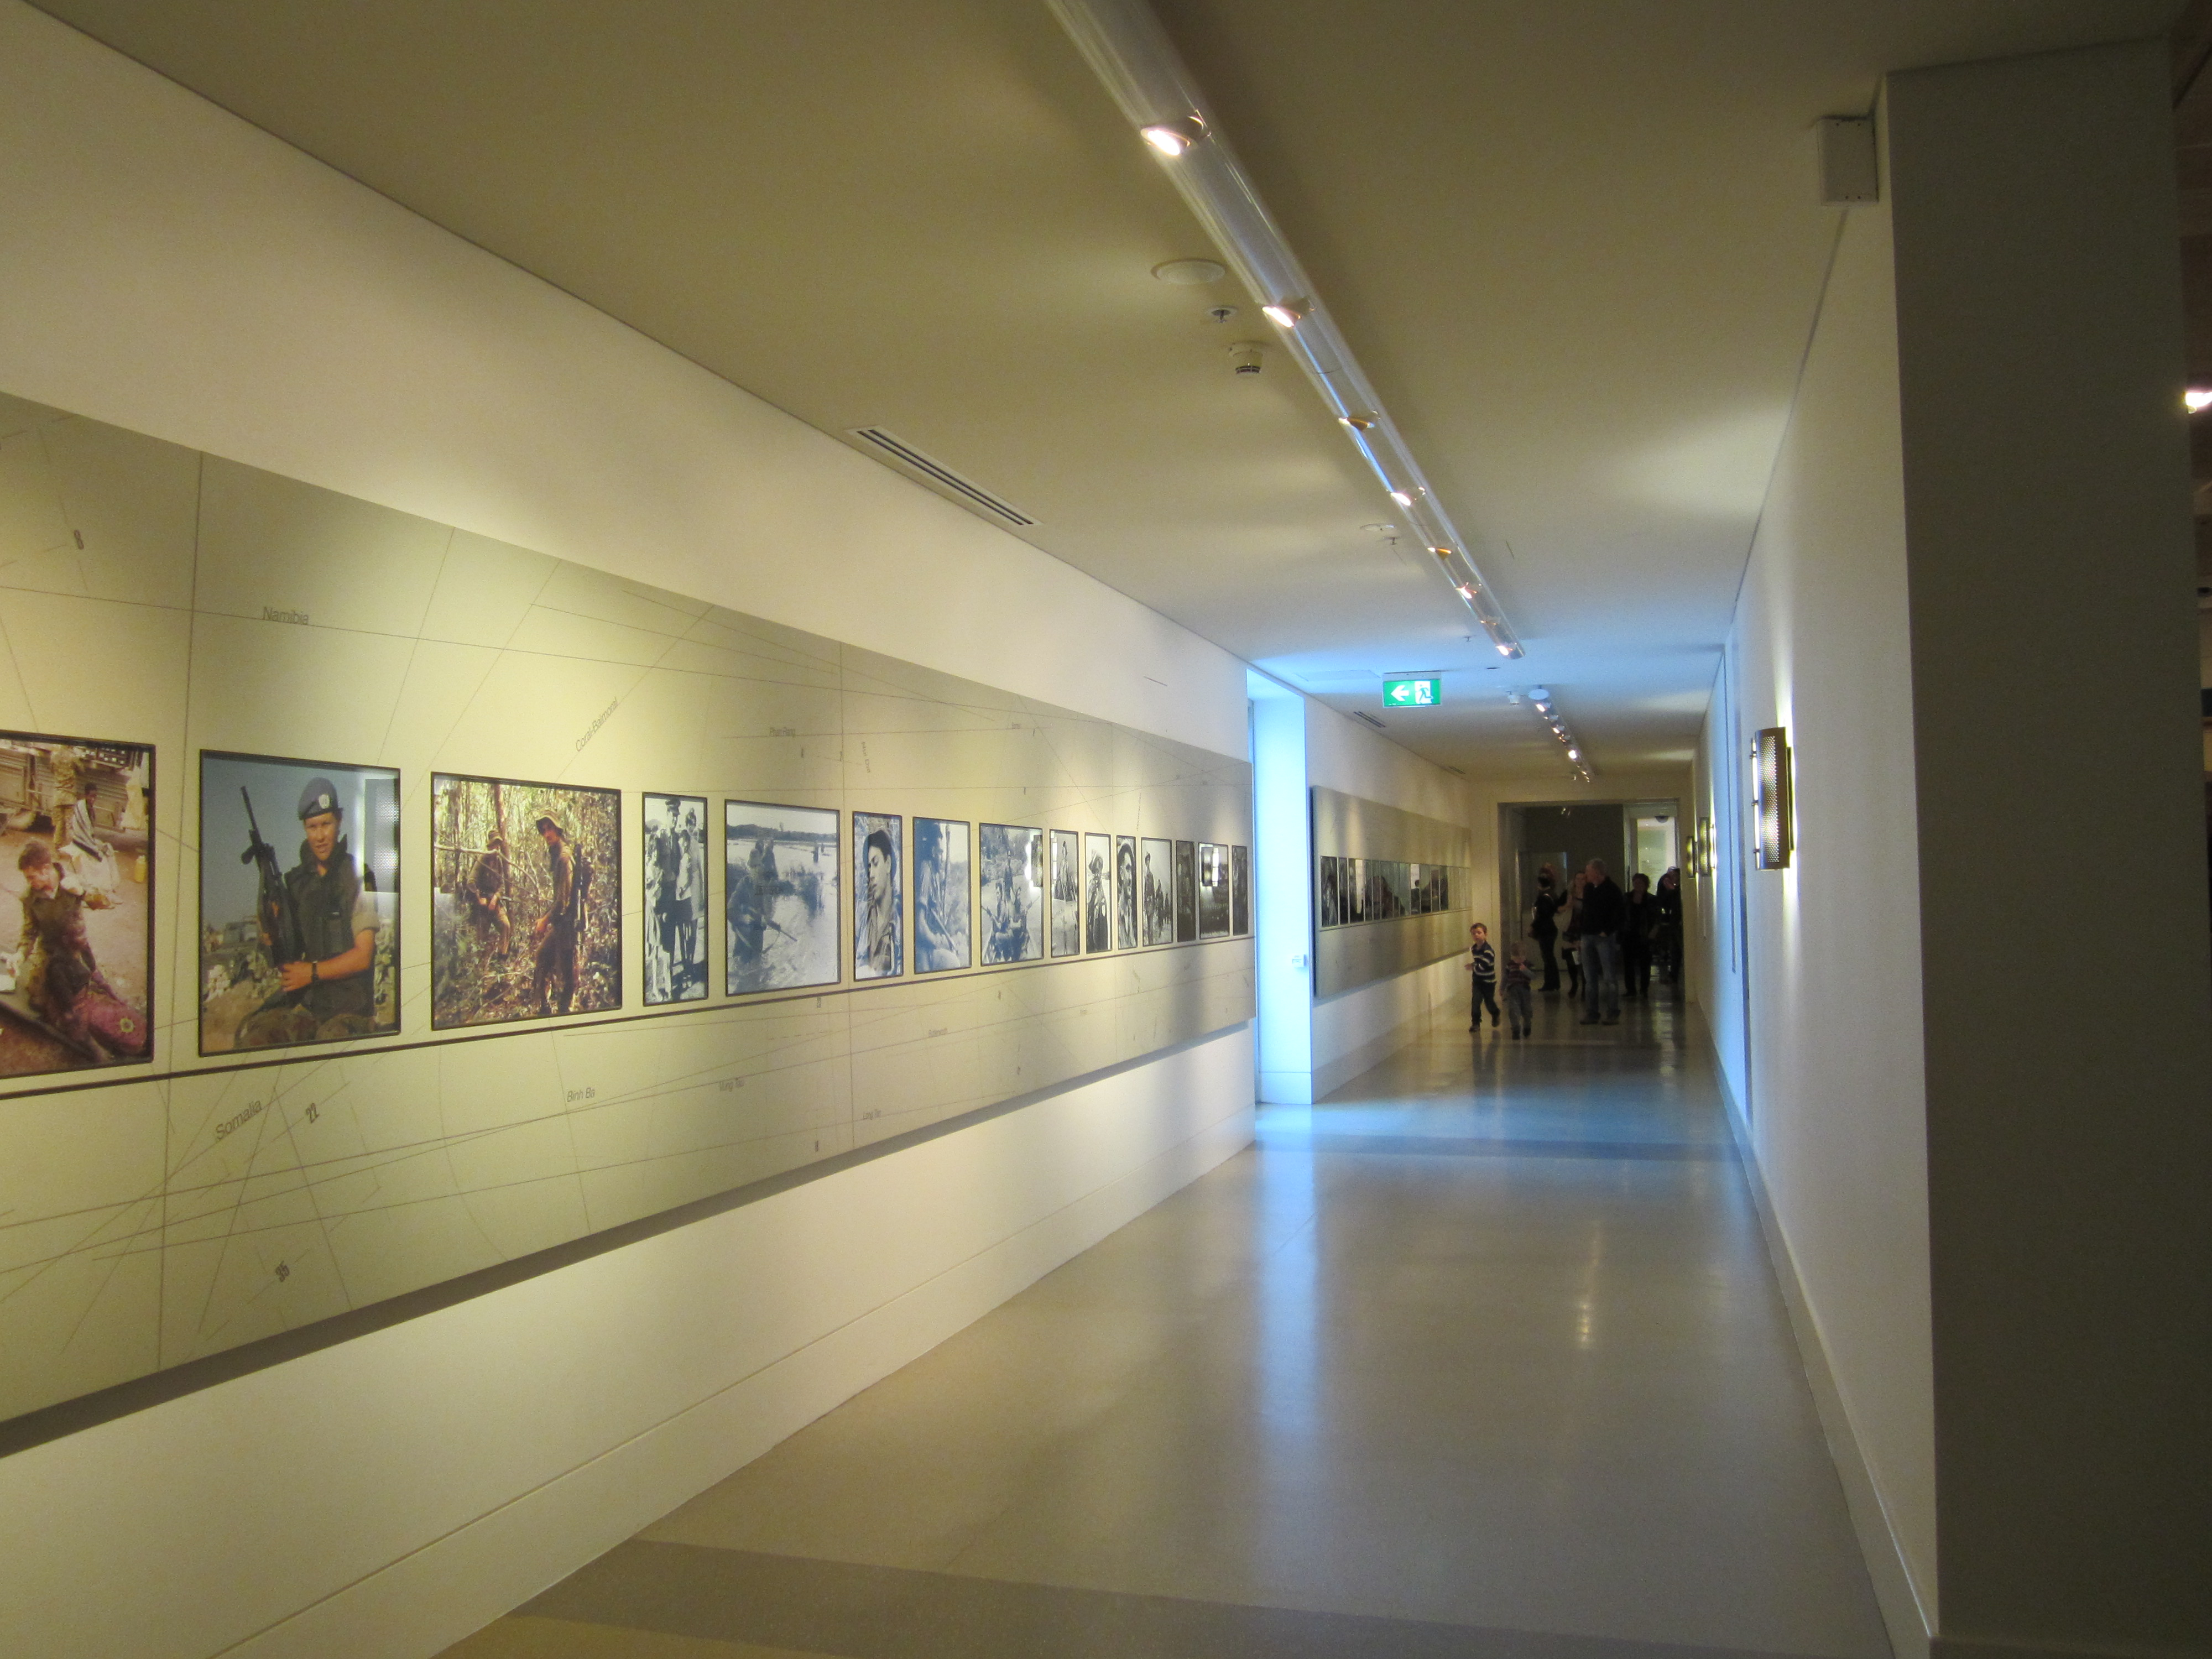 File entrance corridor at the awm august 2012 jpg wikimedia commons - Corridor entrance ...